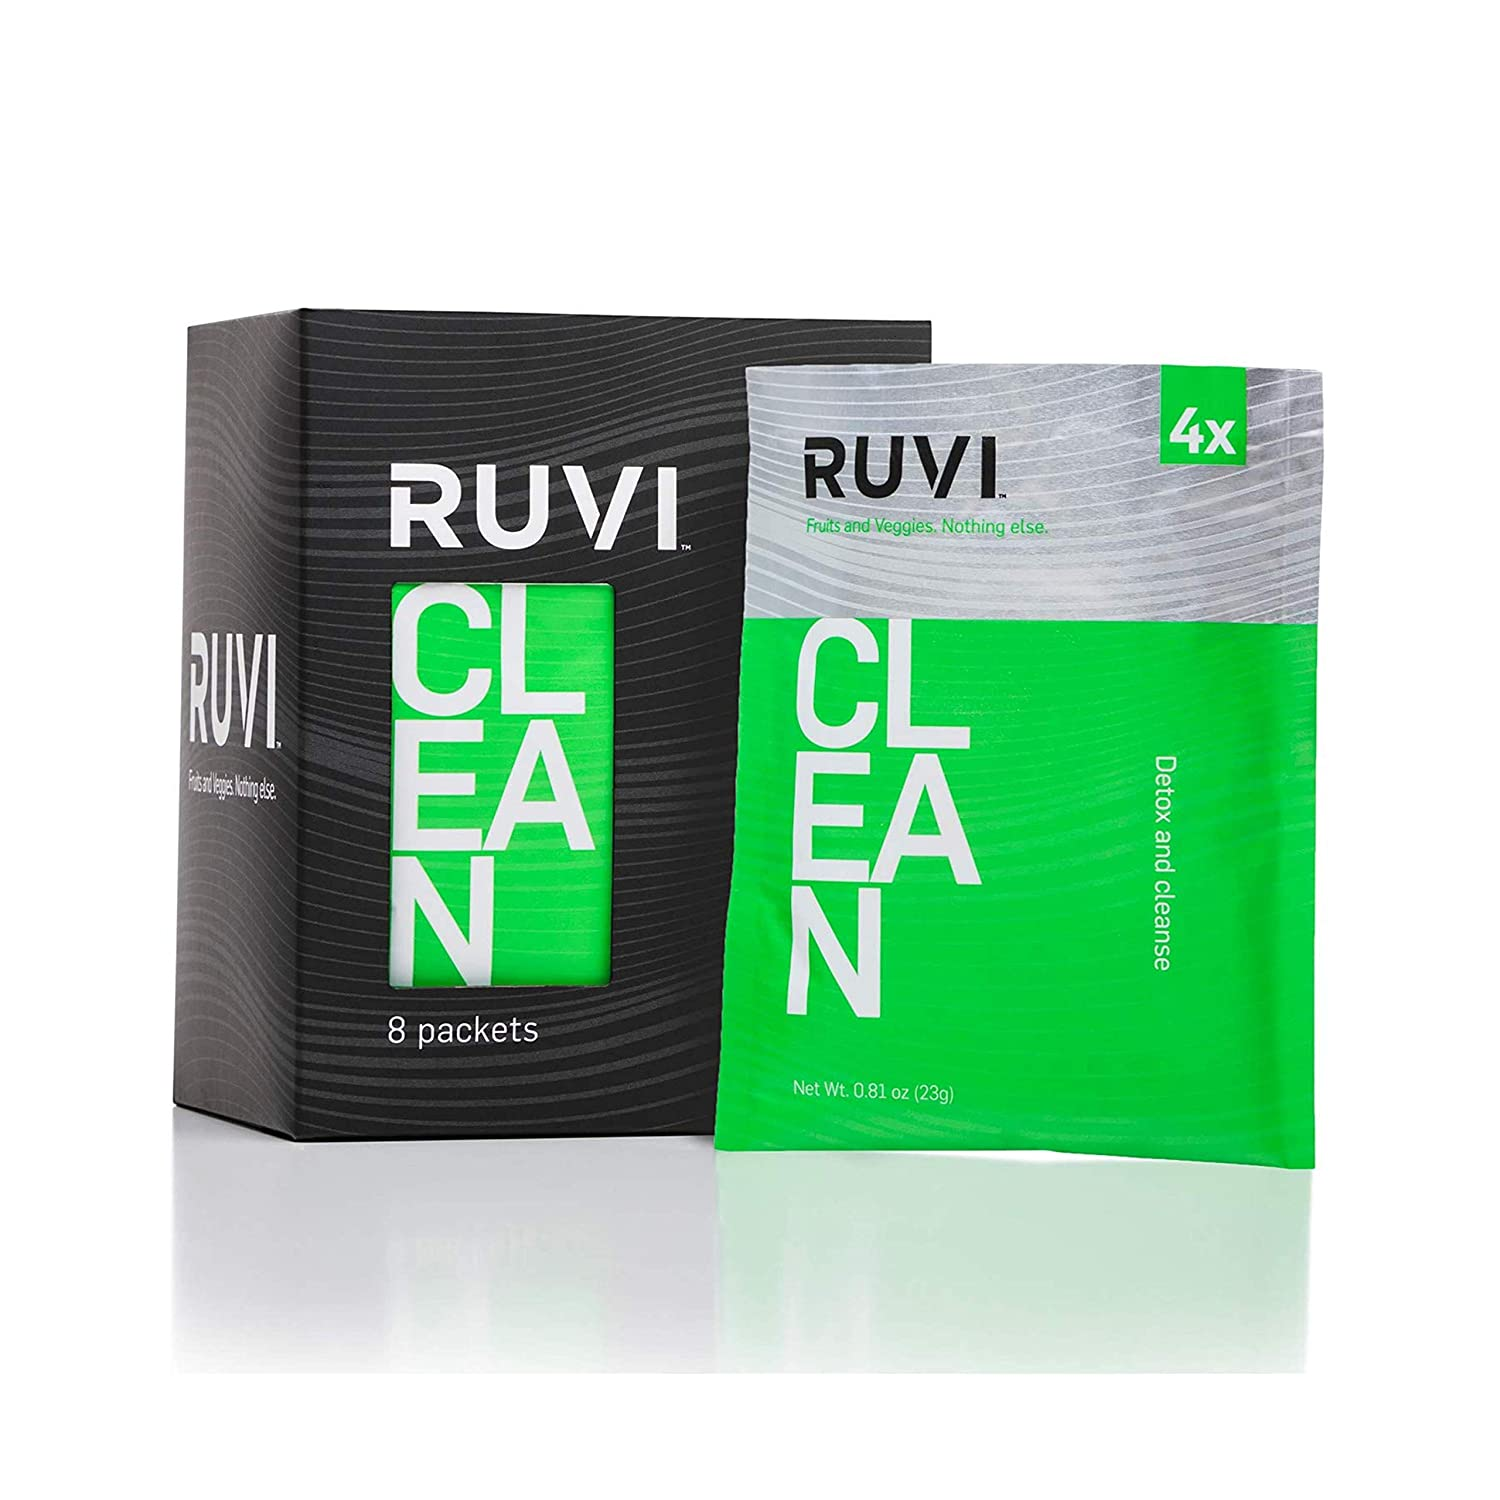 Ruvi Natural Detoxing Smoothies   Fruit and Vegetable Drink Mix   Freeze-Dried Juice Powder   Delicious Flavor Variety Packs   On-the-Go Healthy Snack   Clean-Ingredients   Vegan   Gluten-Free & Non-GMO   No Additives